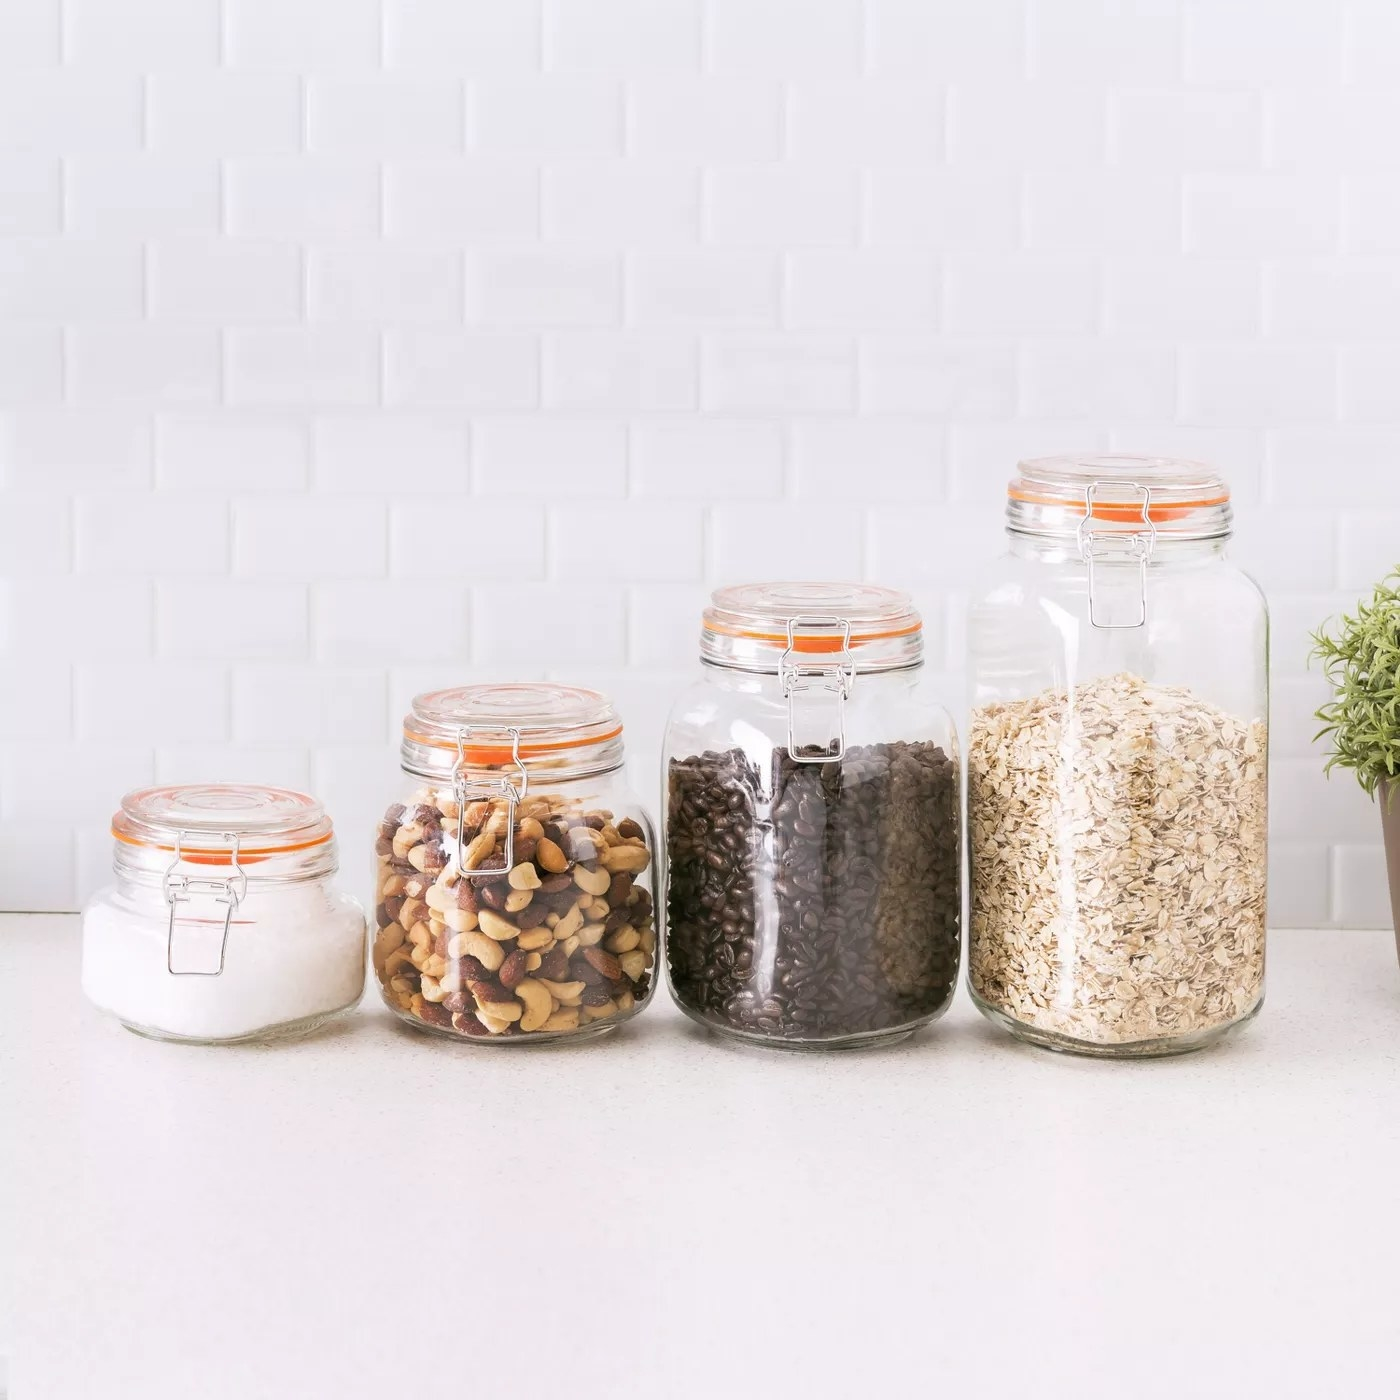 A set of glass canisters with metal clamps in sizes 14-oz, 27-oz, 47-oz, and 68-oz